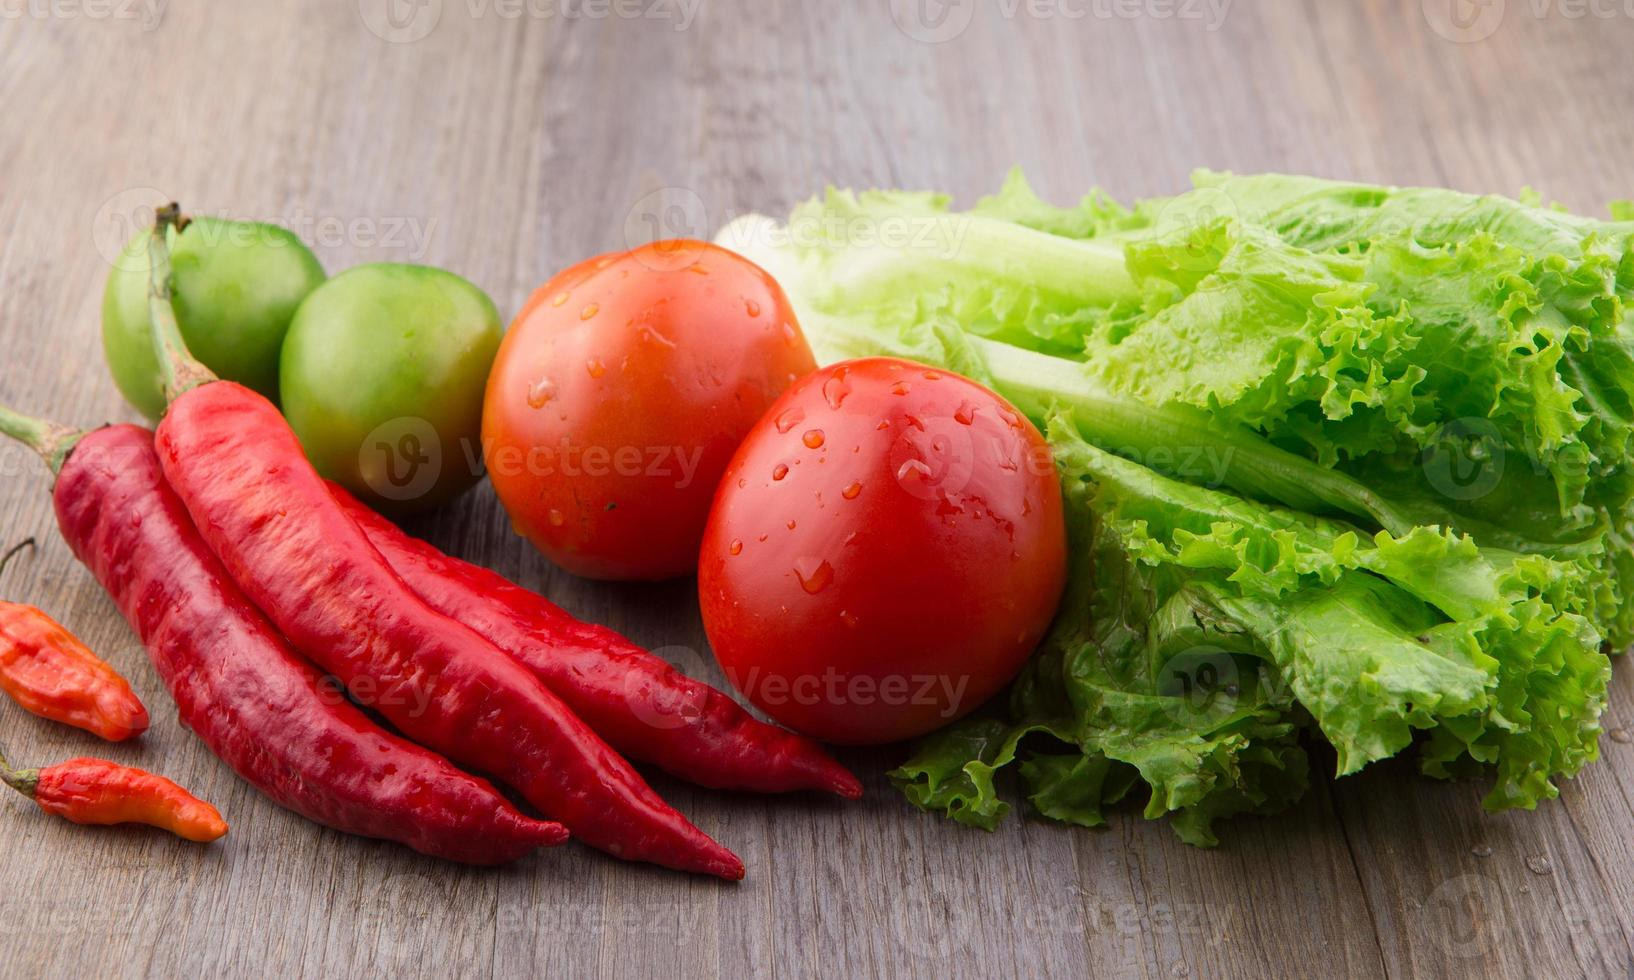 red chilli, birds eye chilli, lettuce, red and green tomato photo